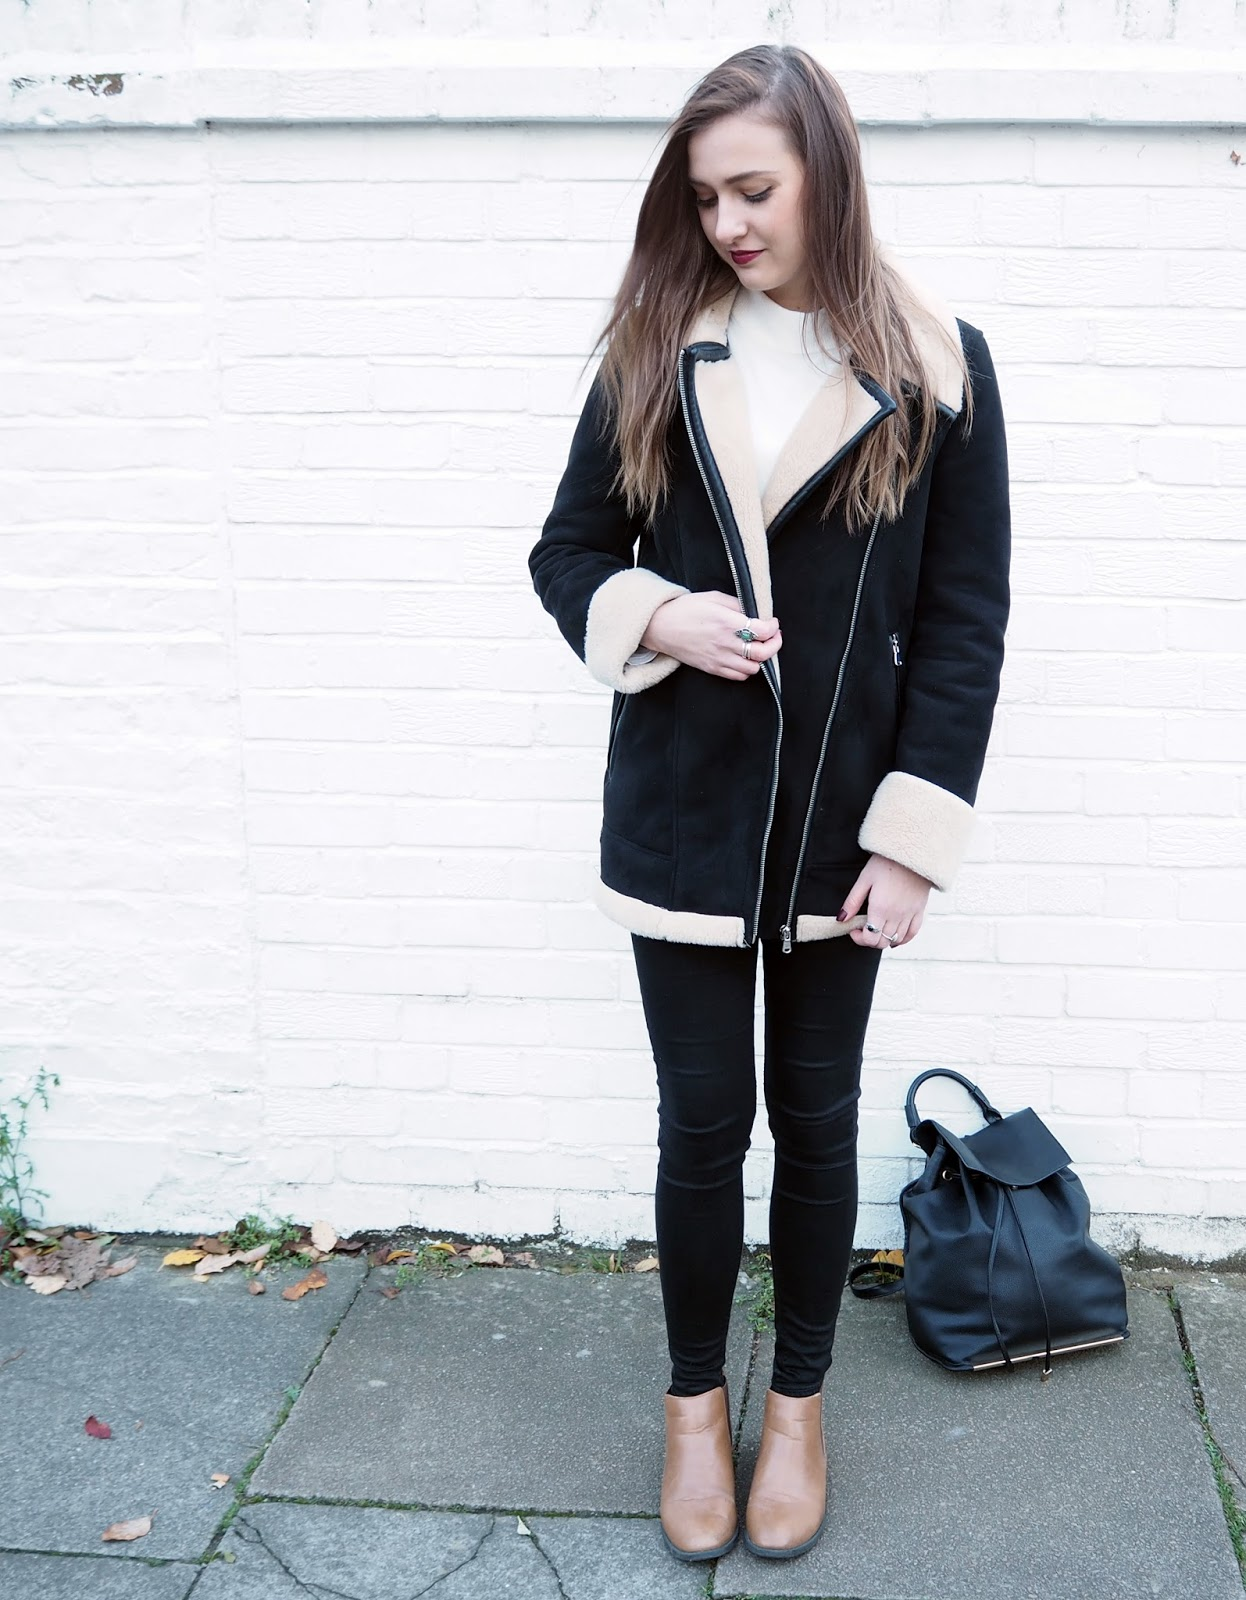 The Shearling Aviator Coat Of Dreams // Lauren Rose London Fashion, Style & Lifestyle blogger // Lauren Rose Bell // ZARA OOTD WIWT